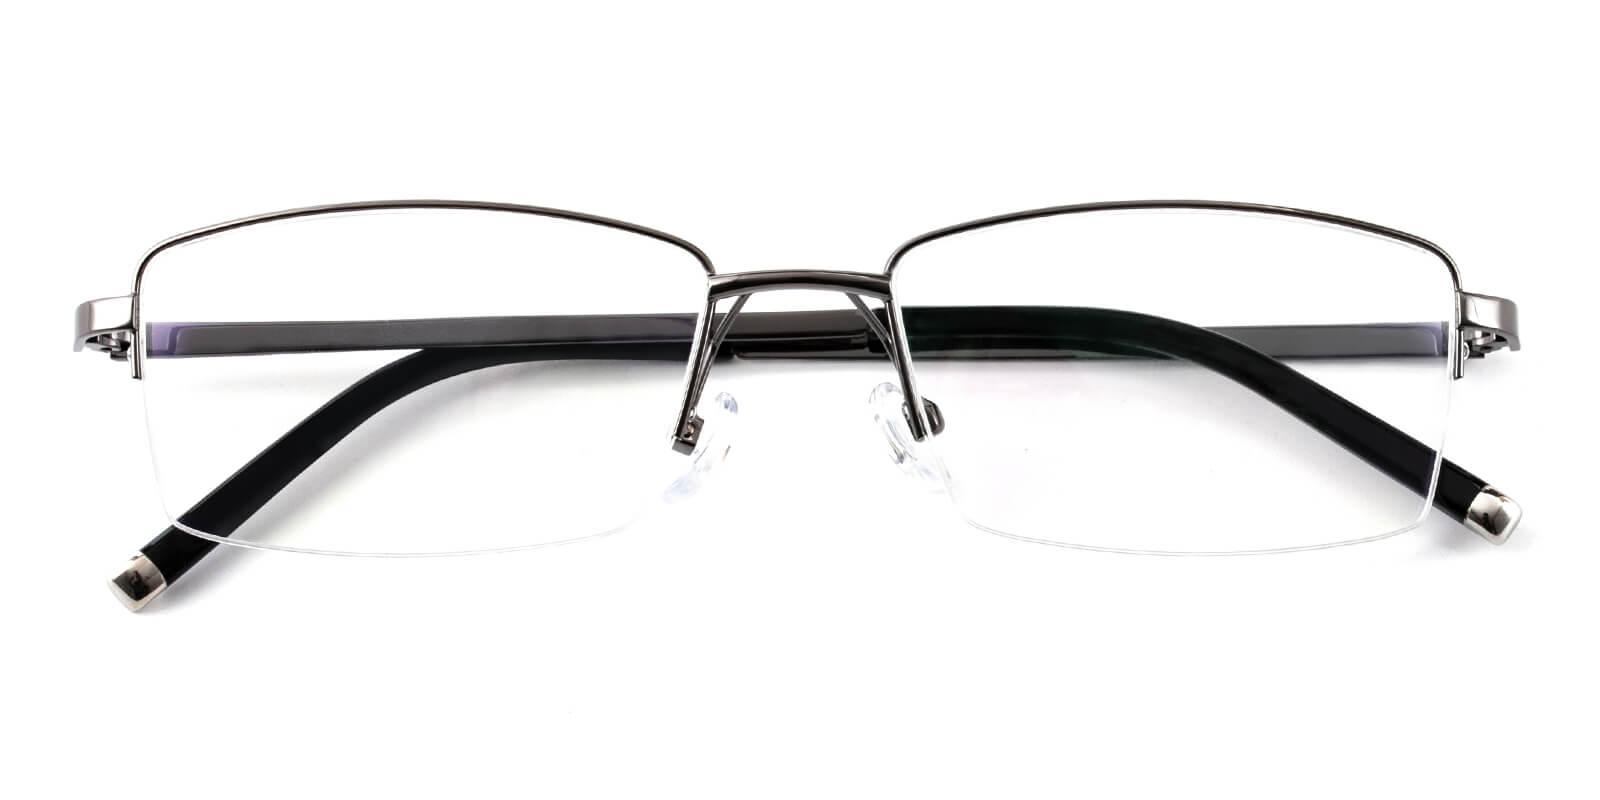 Emerge-Gun-Rectangle-Titanium-Eyeglasses-detail